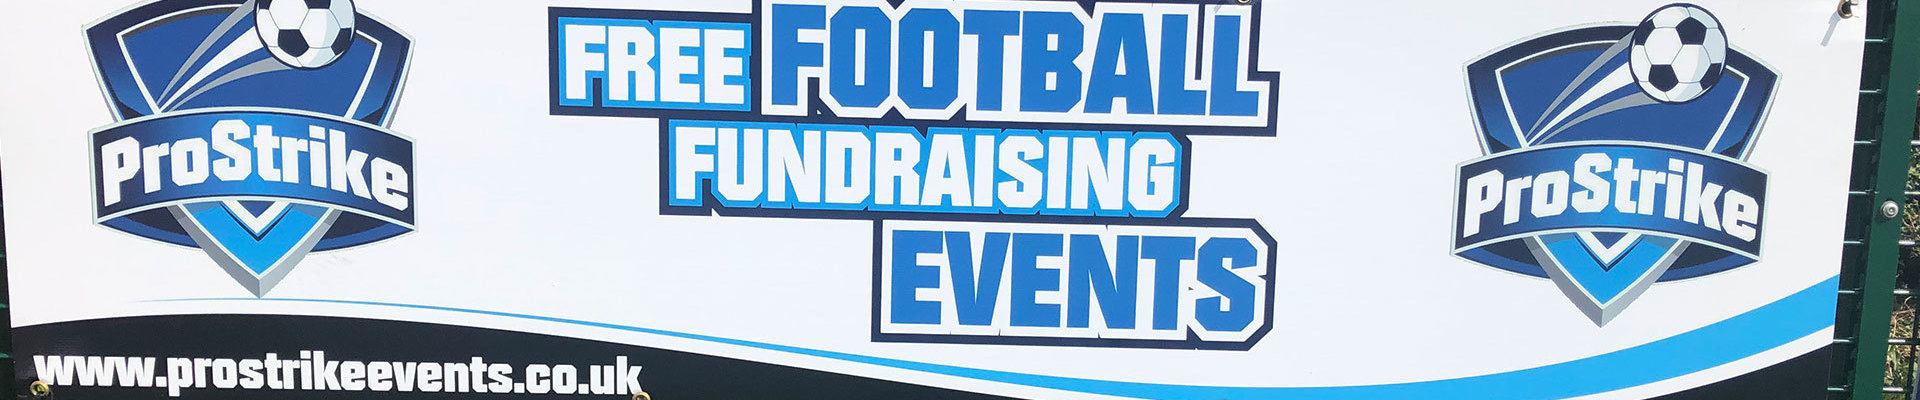 Football Fundraising Ideas